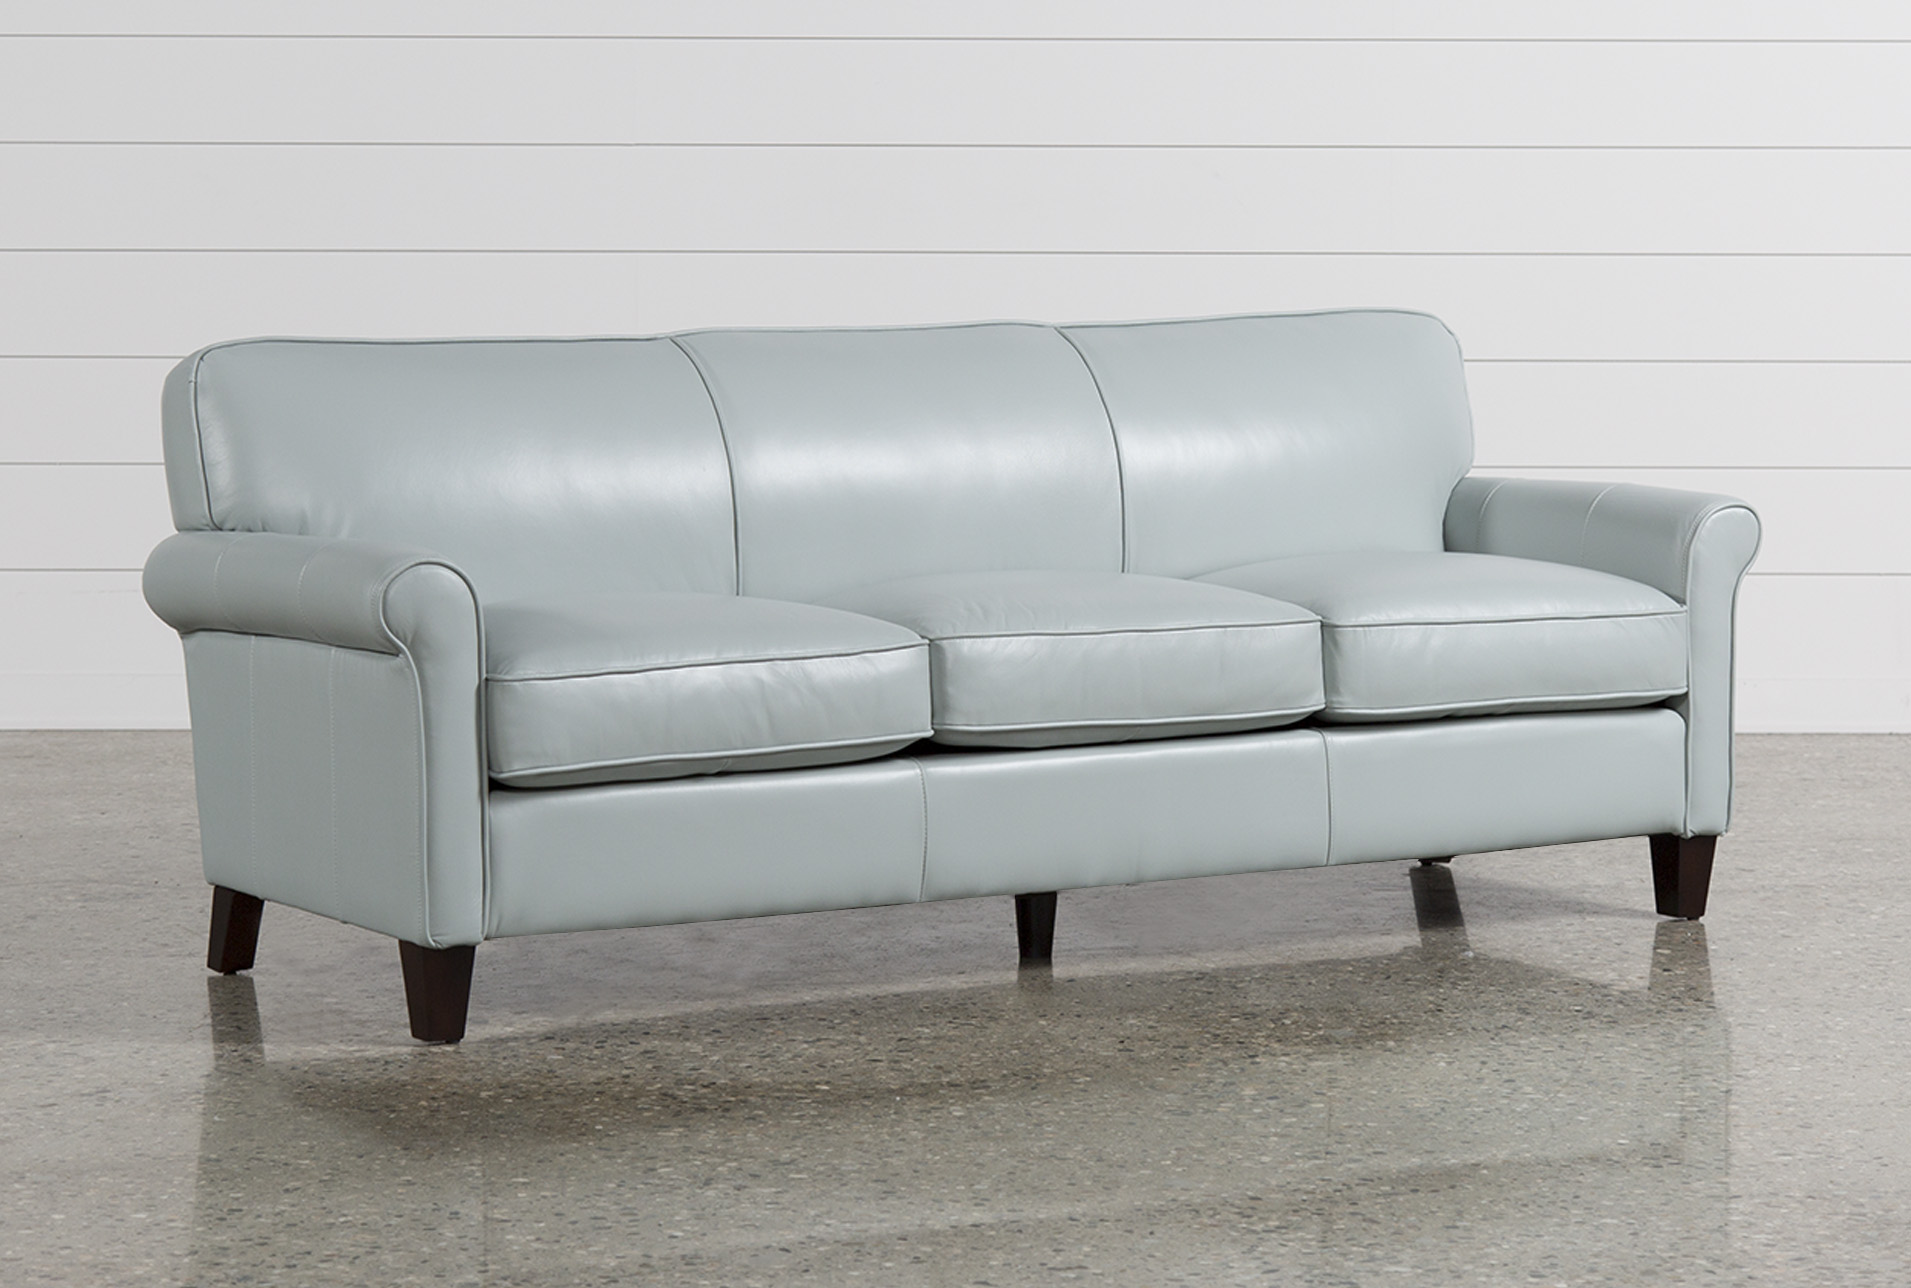 Delicieux Phoebe Blue Leather Sofa   360